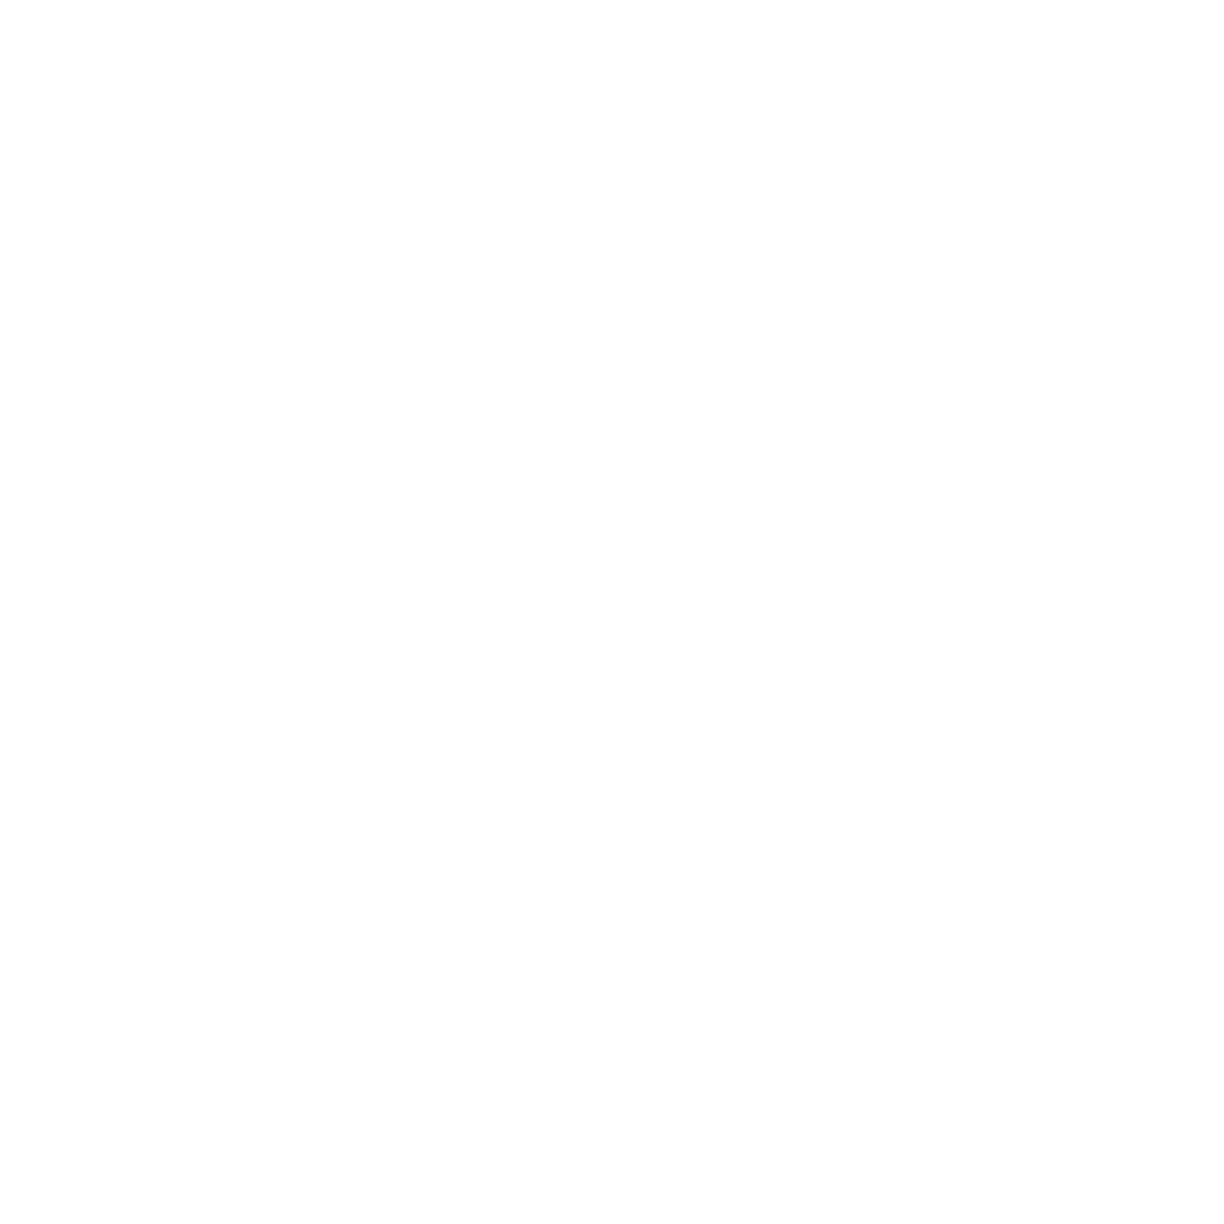 FFFEST - Celebrating Women in Film